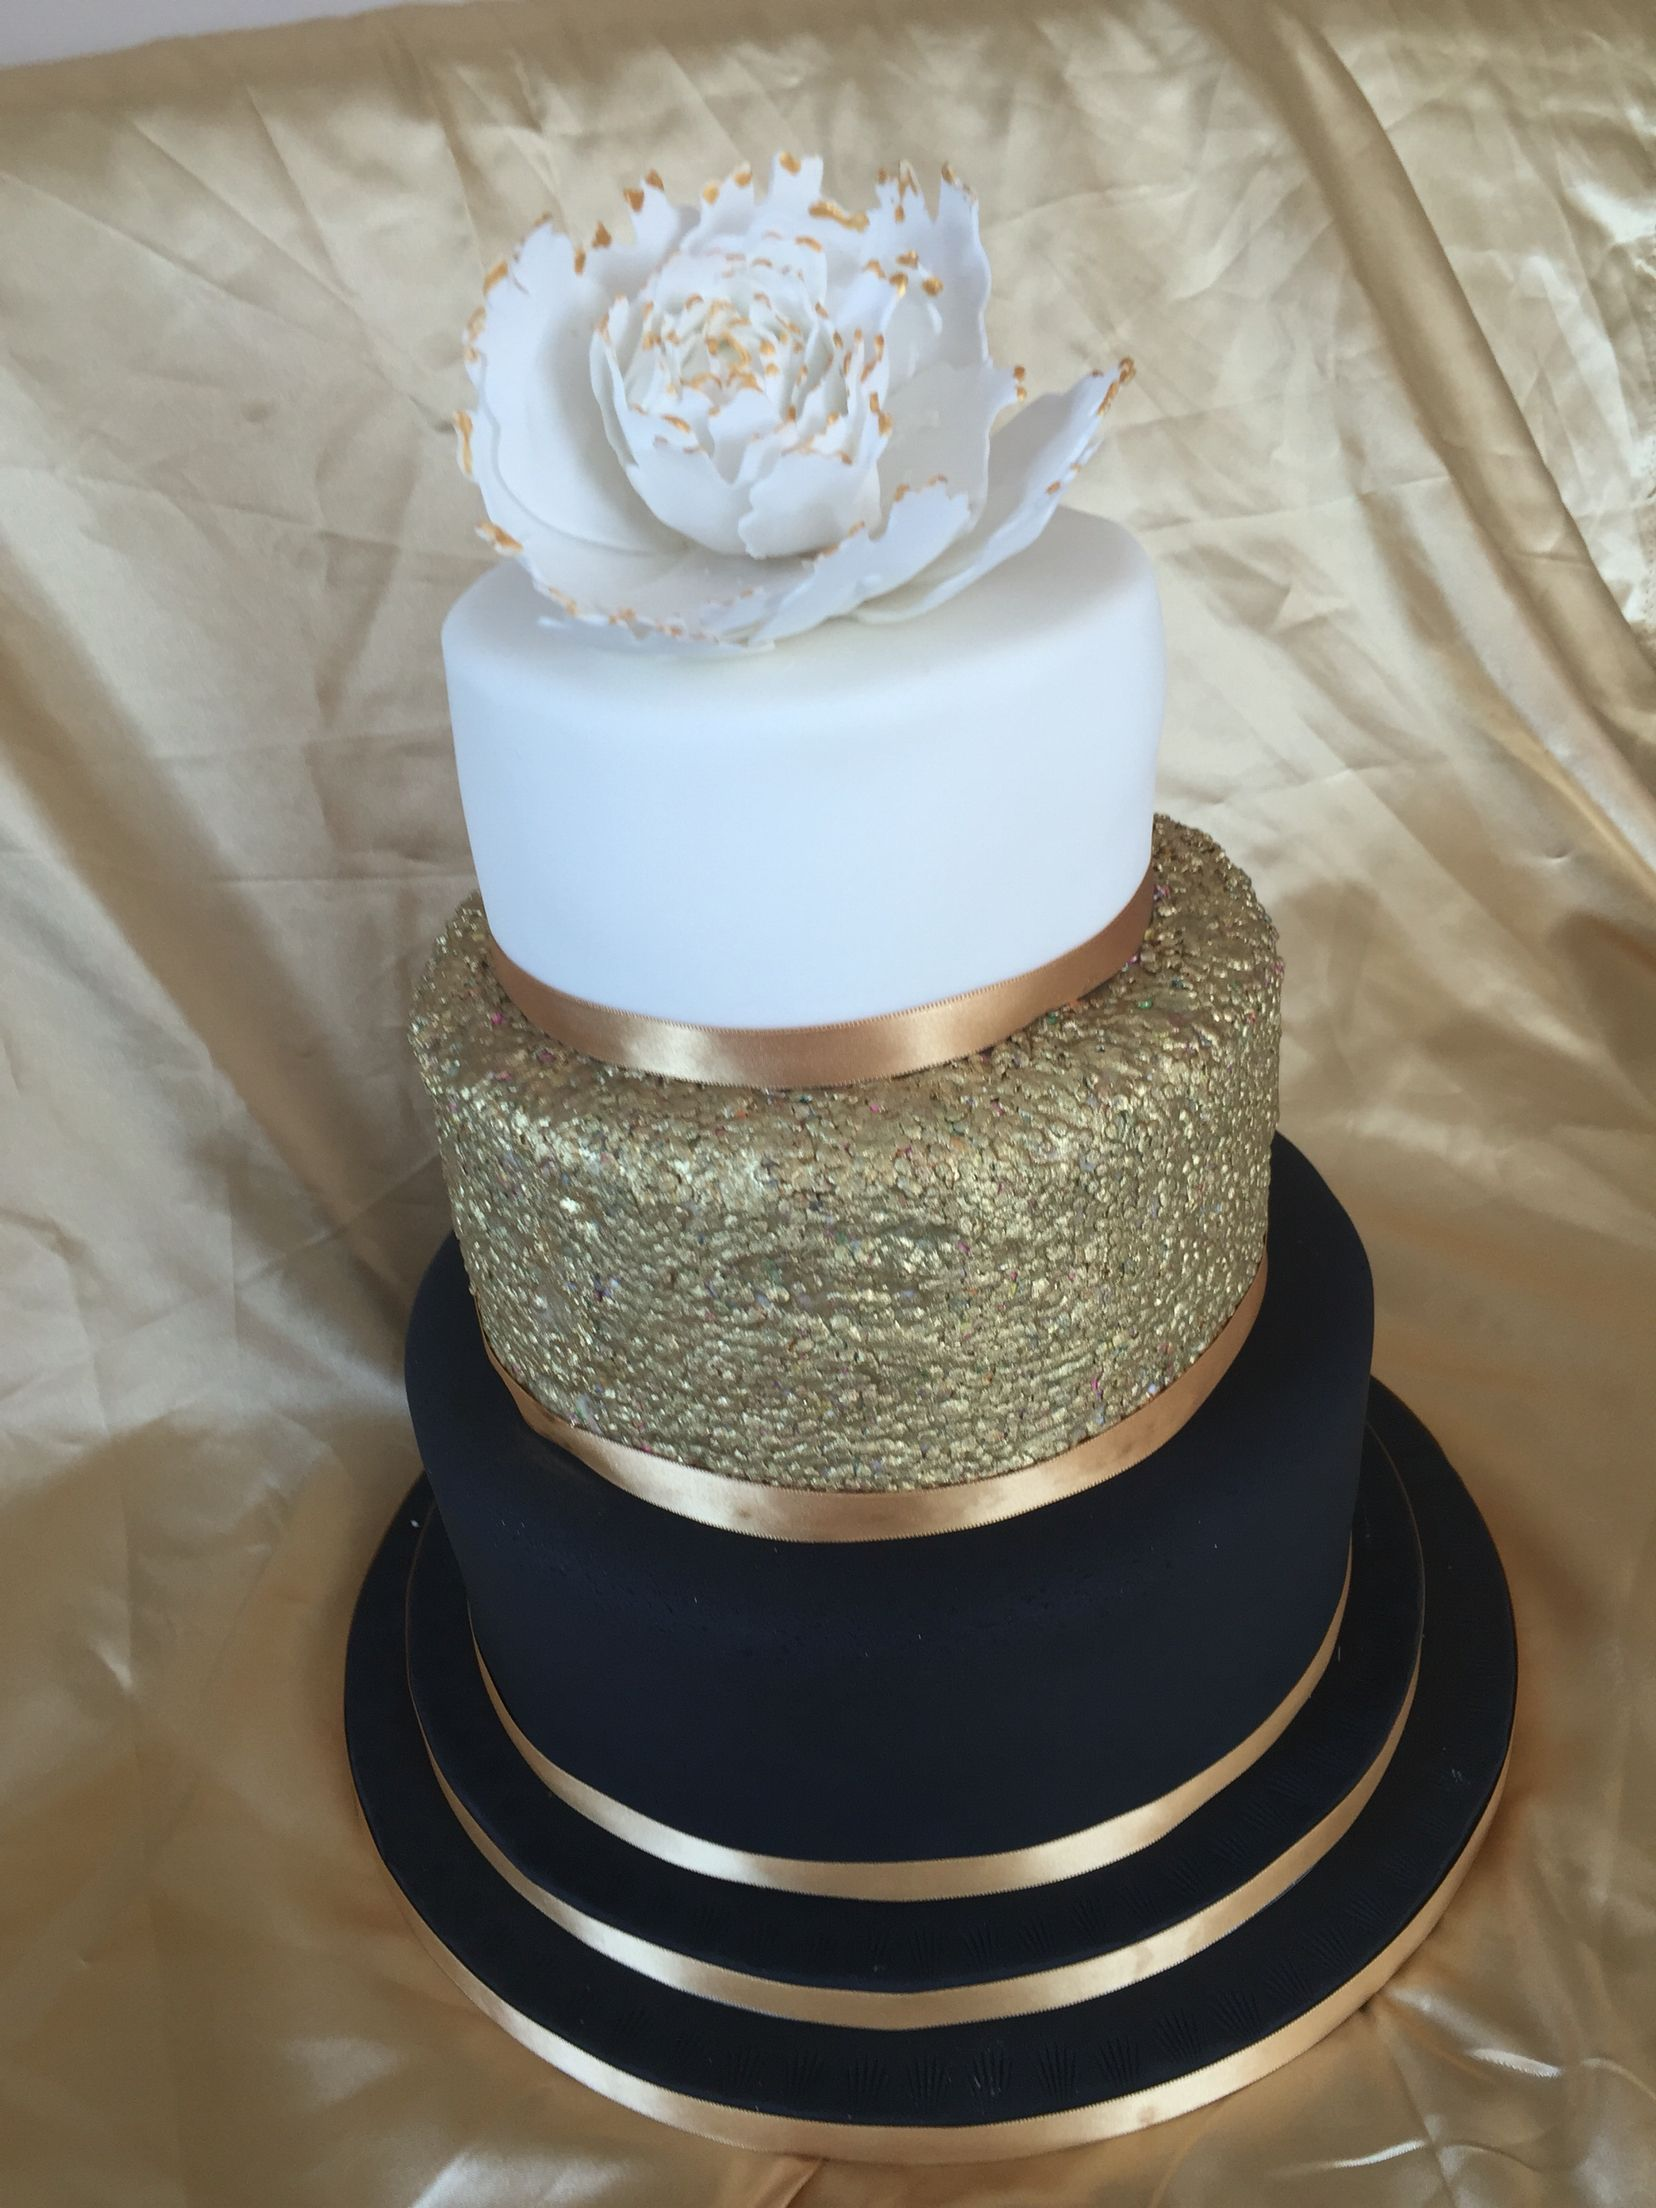 54 Black, White And Gold Wedding Ideas | White wedding cakes, Black ...